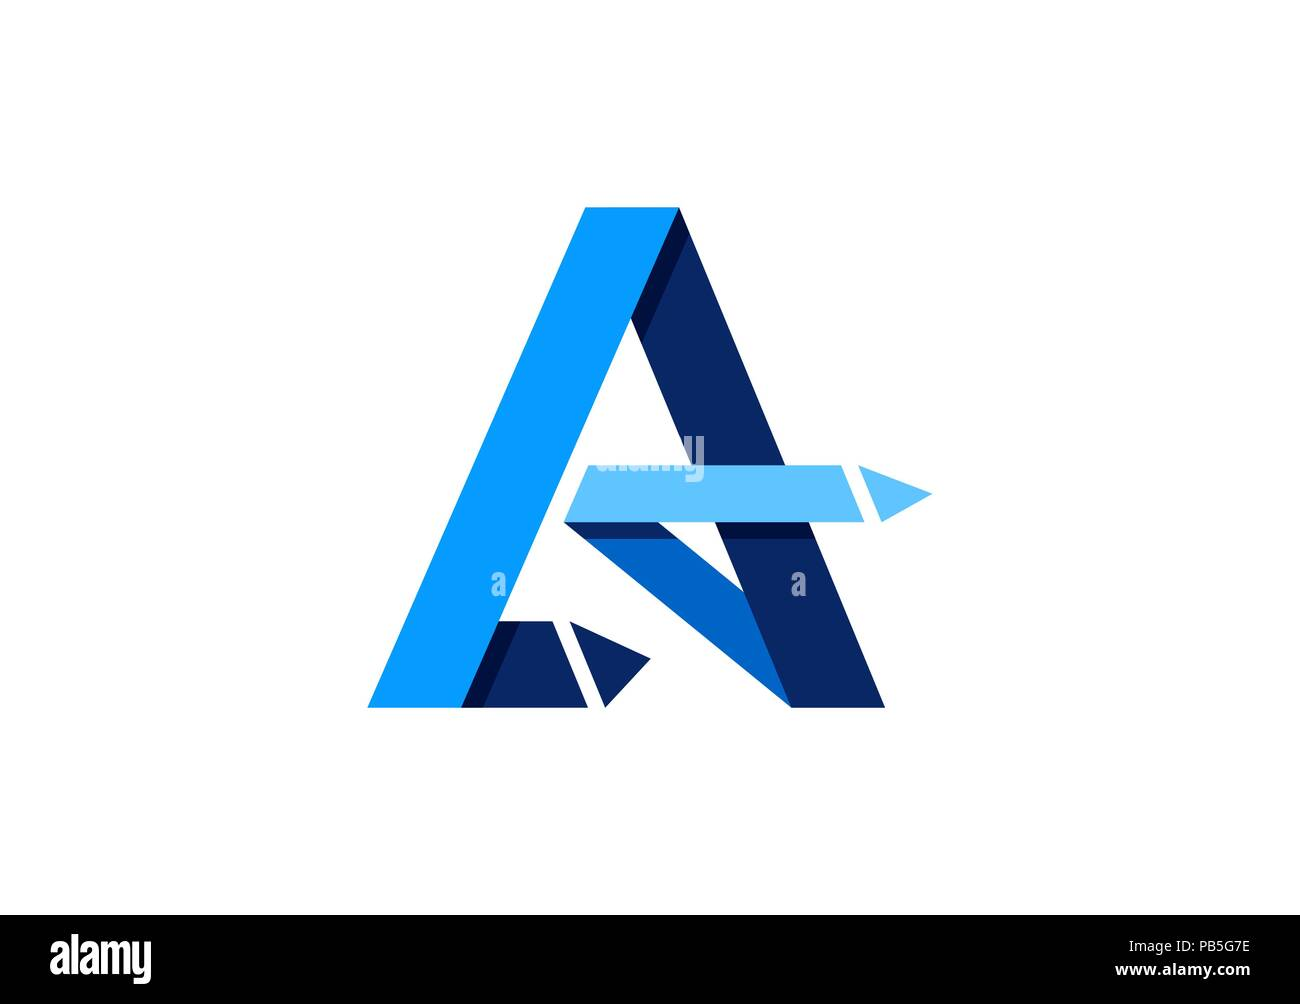 letter A logo, abstract element arrows blue letter A logo icon, business marketing element symbol vector design - Stock Image